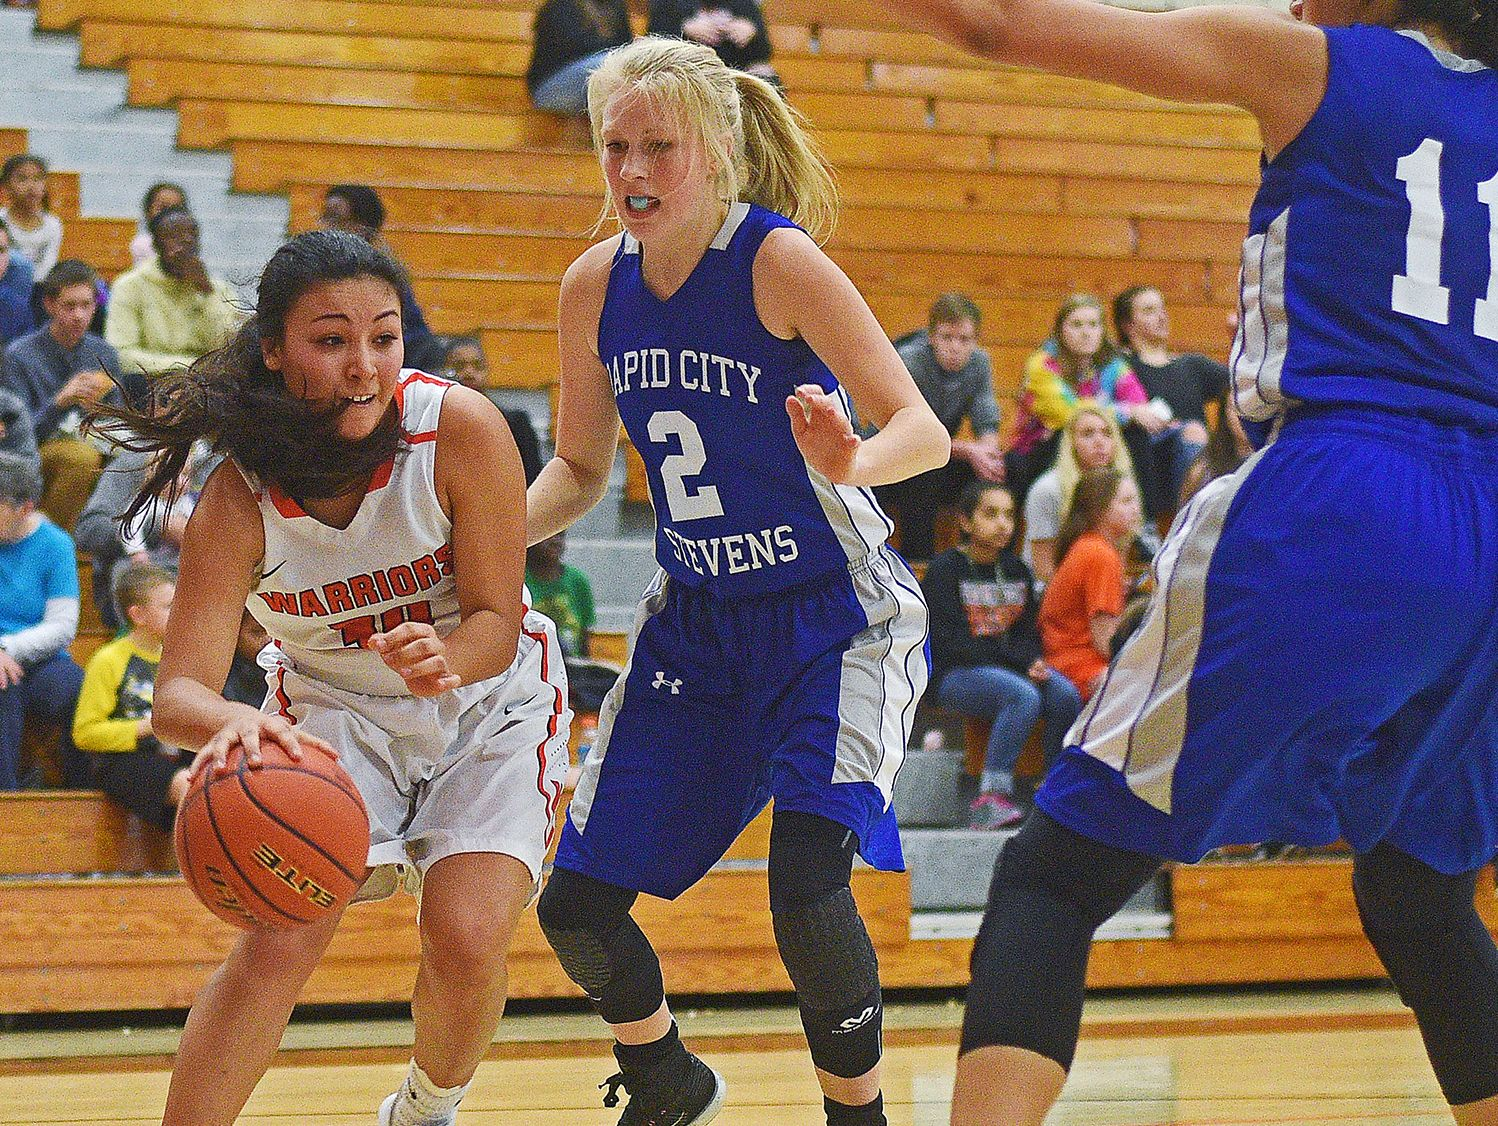 Washington's Taylor VanderVelde (30) drives past Rapid City Stevens' Ally Riddle (2) during a game Friday, Feb. 10, 2017, at Washington High School in Sioux Falls.